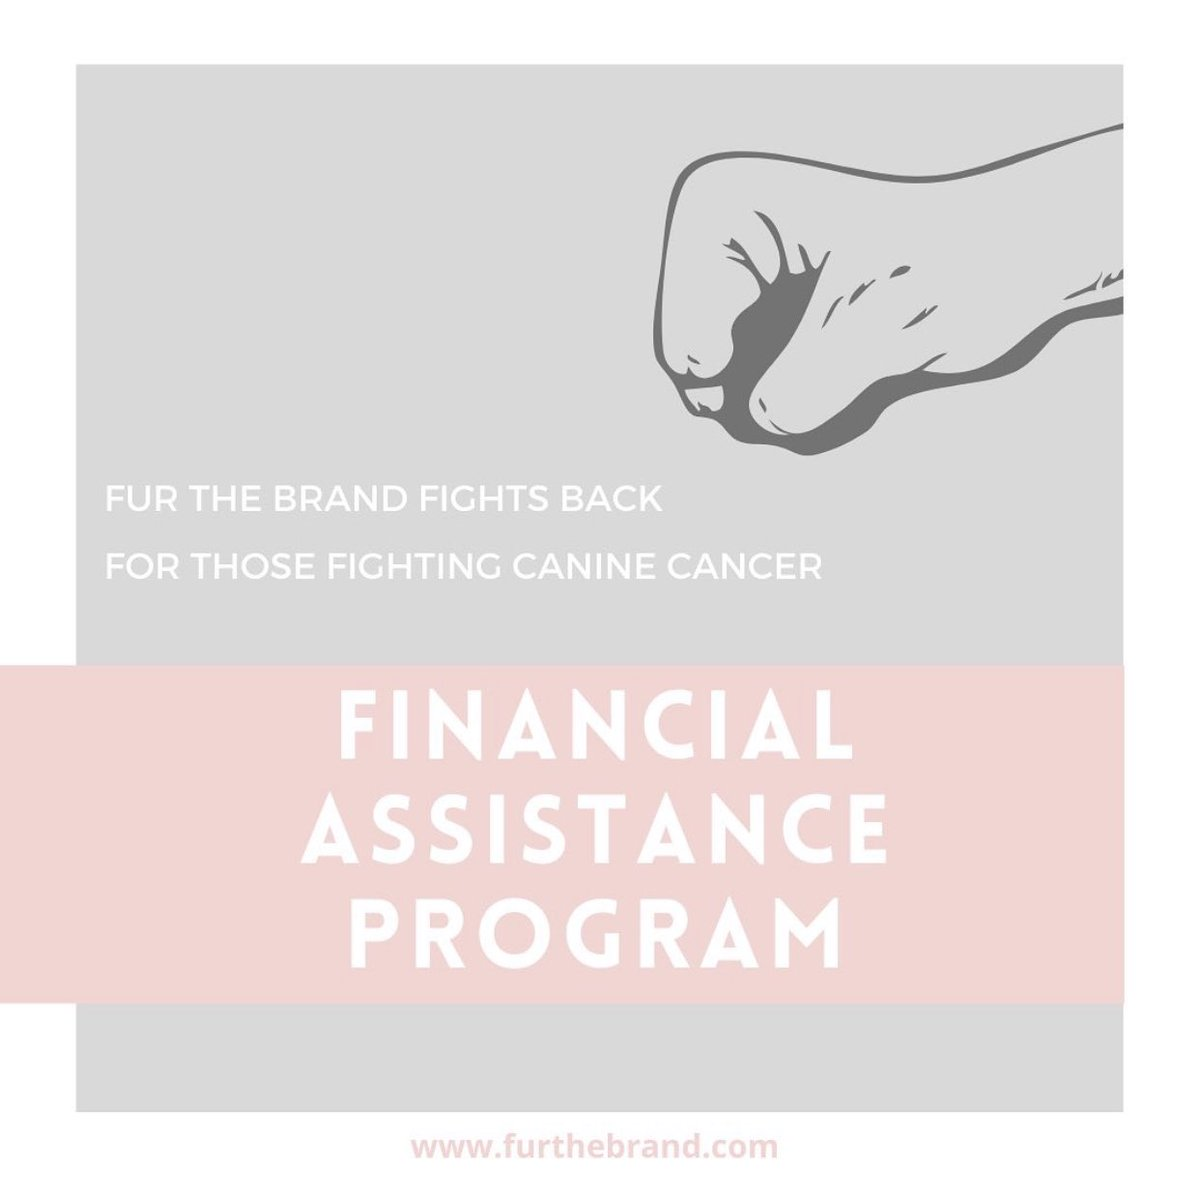 Canine cancer having you sell things around your home or working a second job?! Need help paying those medical bills? We are here to help lift that financial burden! Apply today! Visit our website to learn how we can help your dog or how you can help save dogs with cancer! 🐶